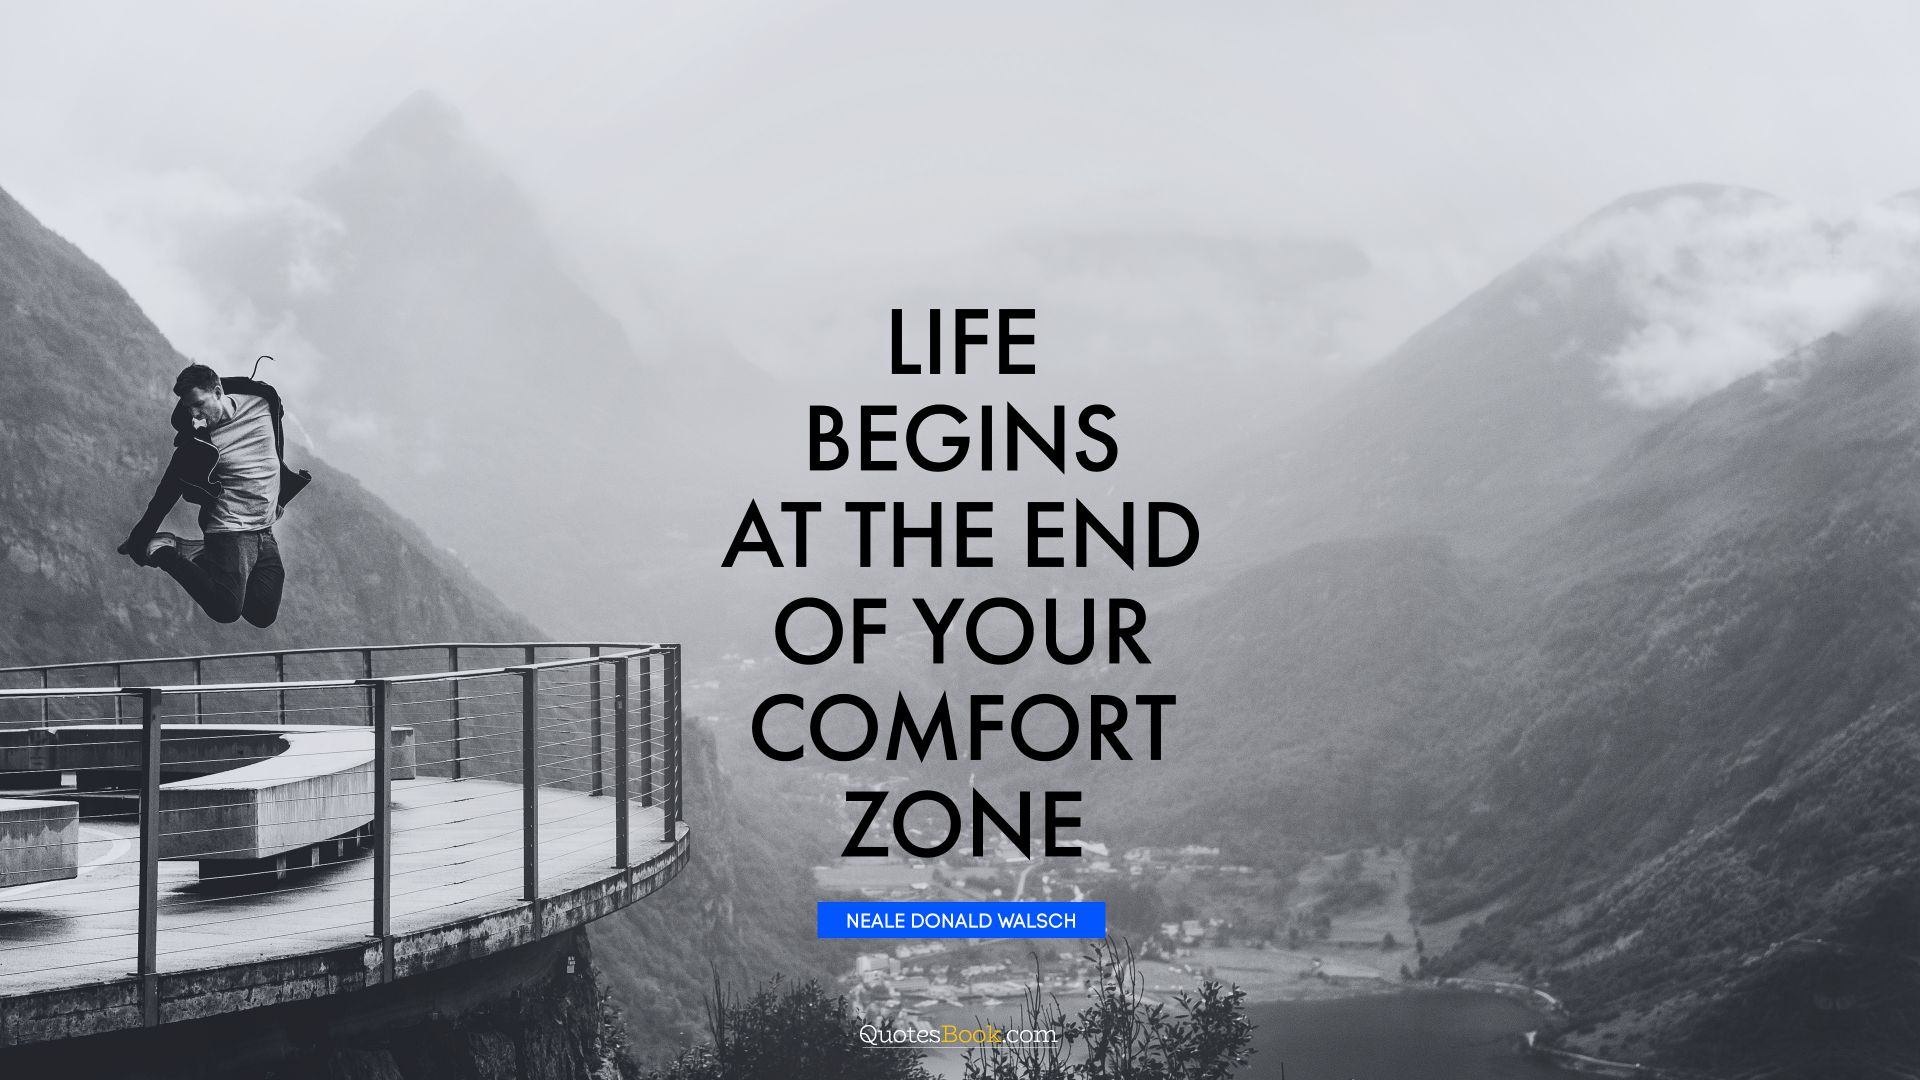 Life begins at the end of your comfort zone. - Quote by Neale Donald Walsch